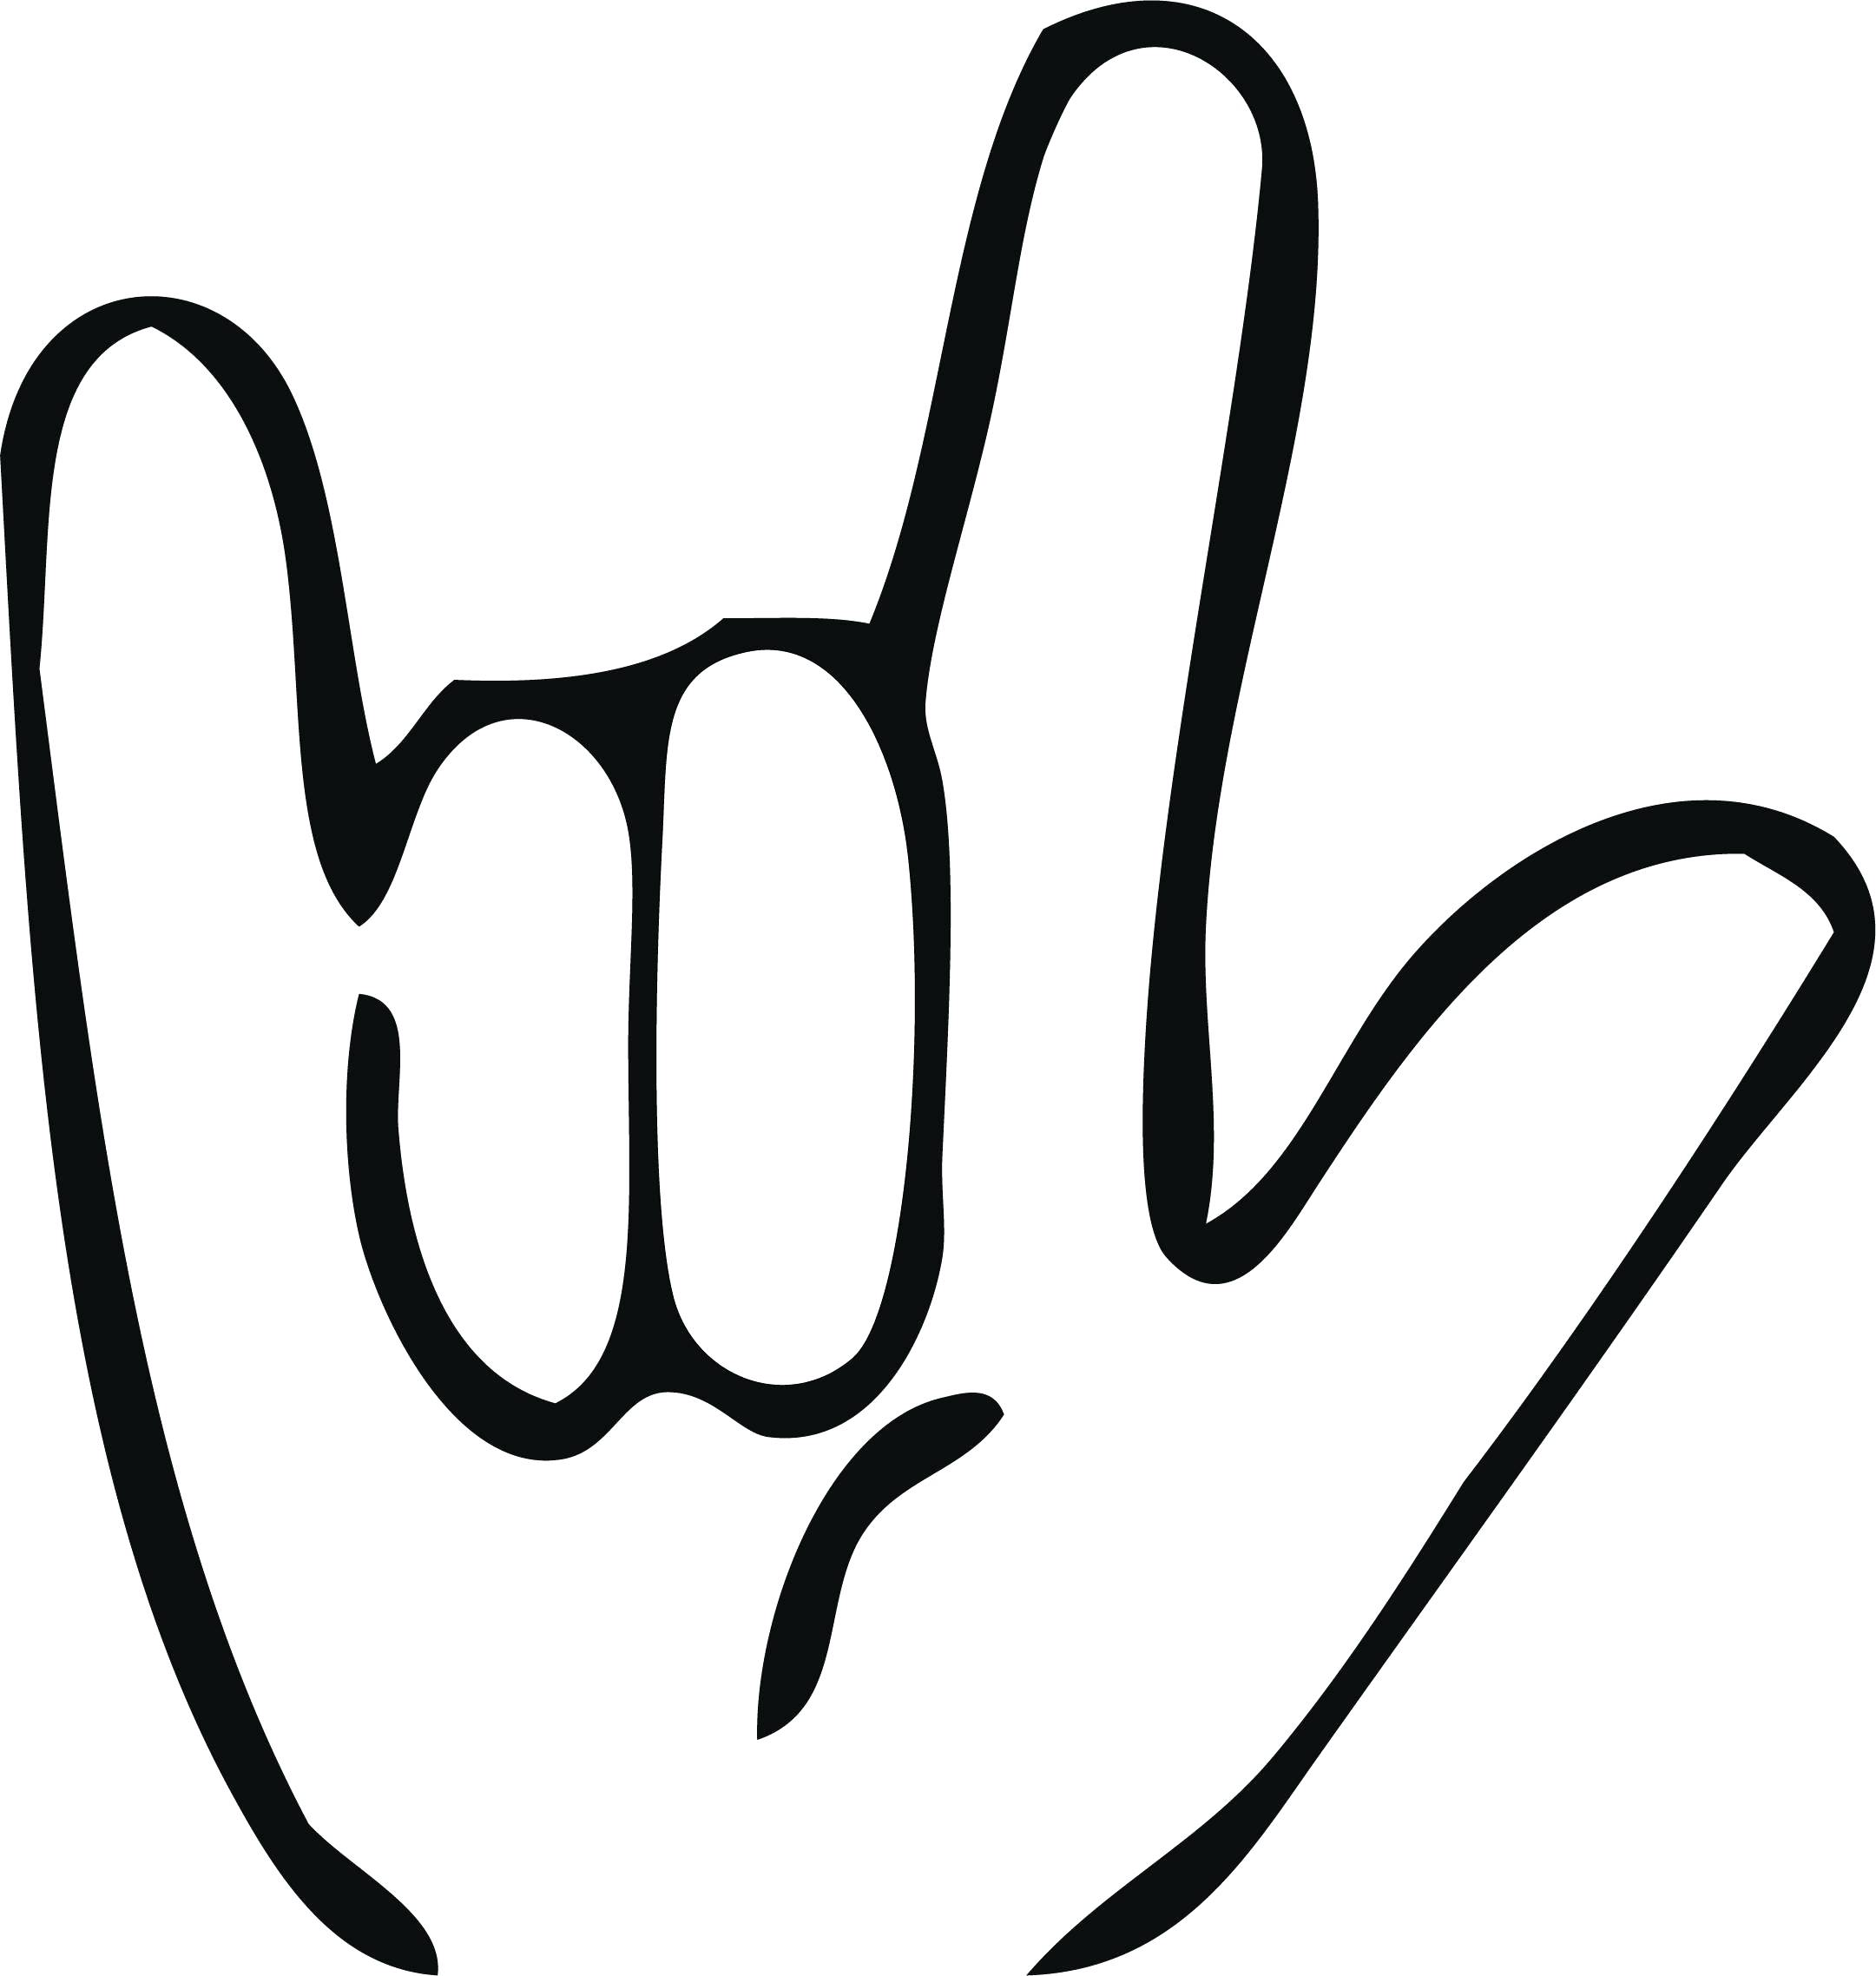 The Best Free Asl Drawing Images Download From 46 Free Drawings Of Asl At Getdrawings